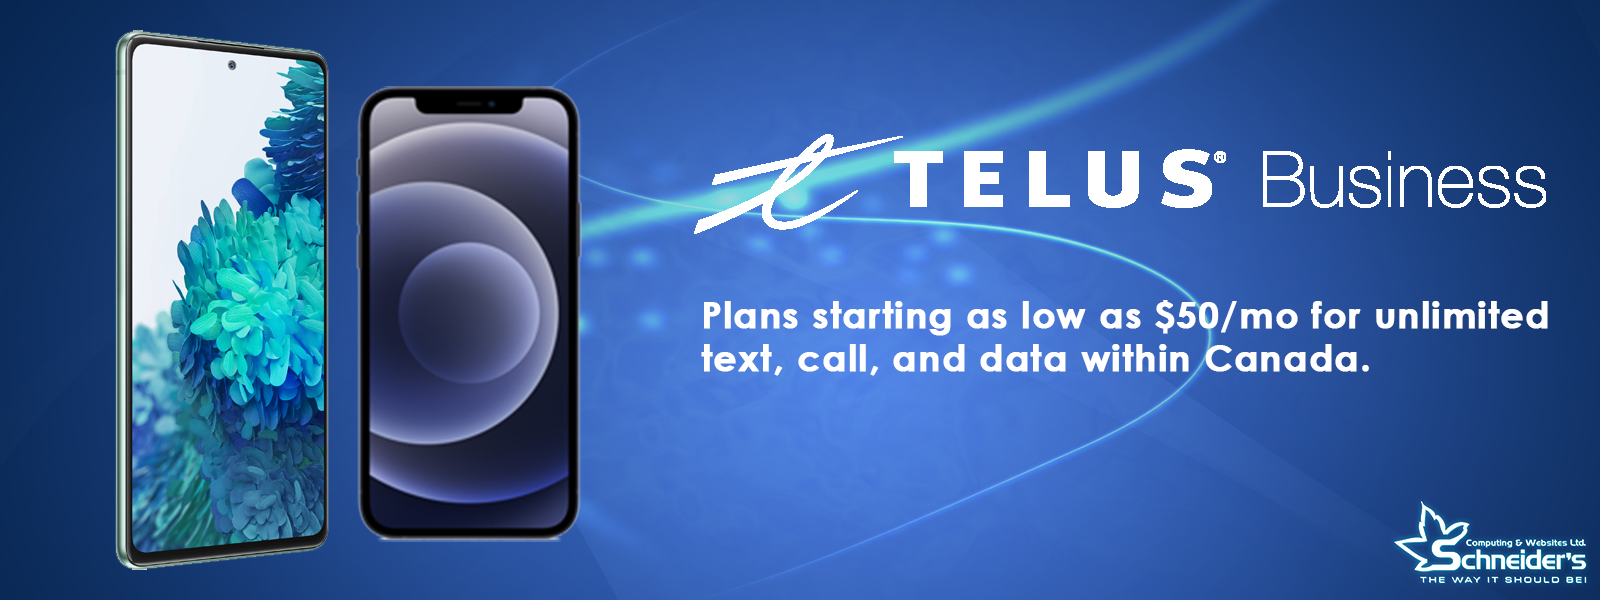 Website Banner Telus Plans